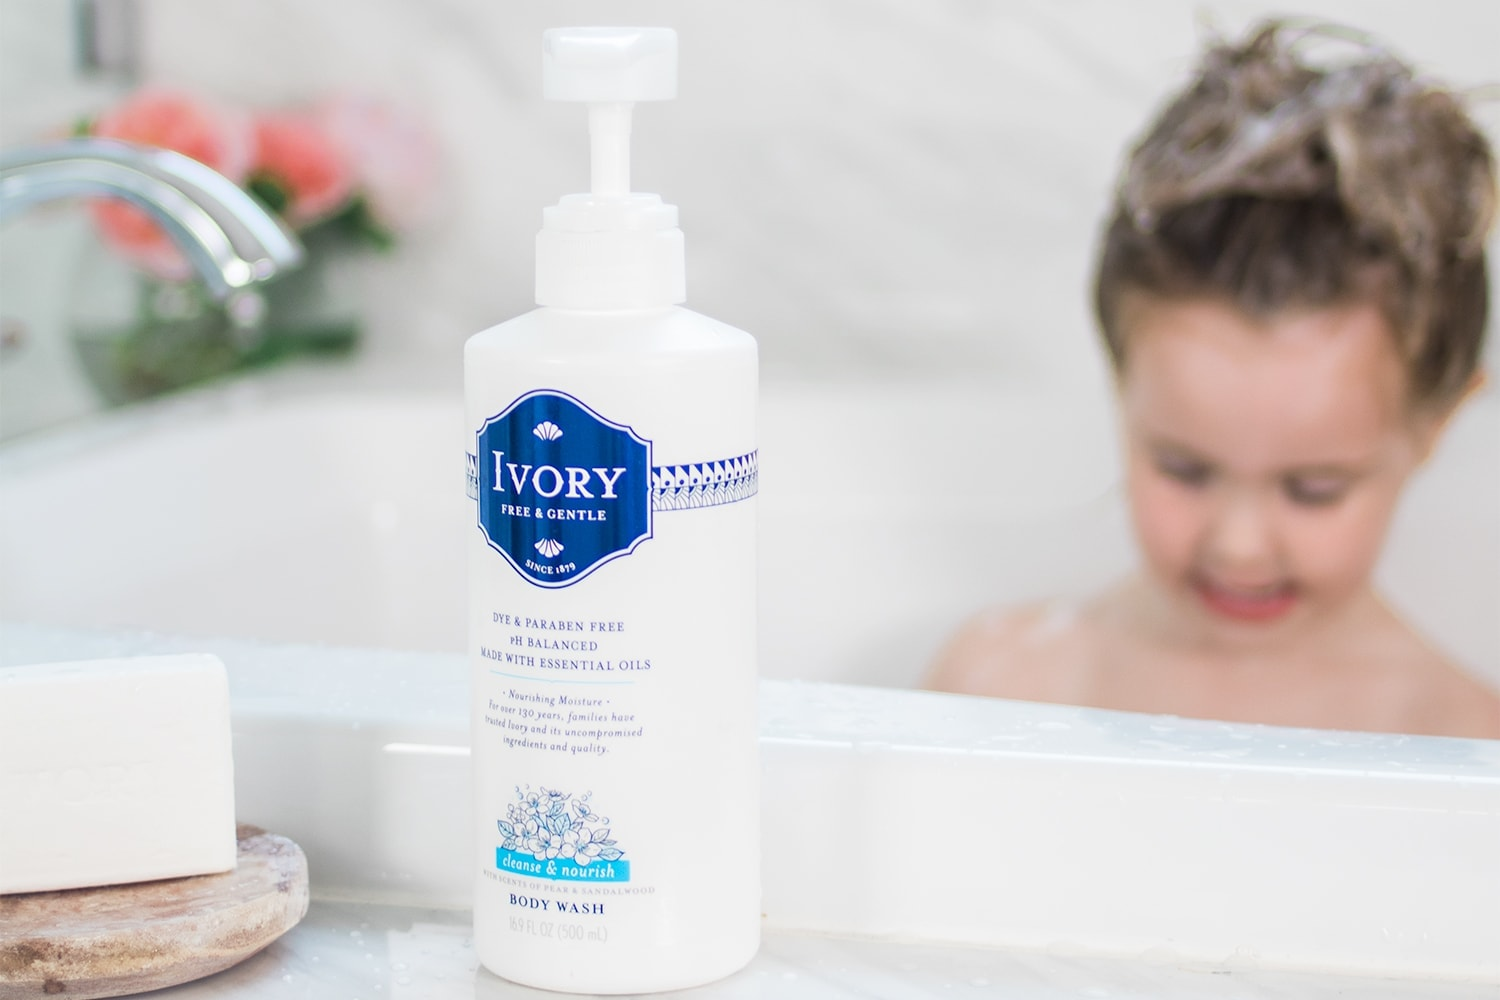 Houston blogger Meg O. on the Go shares about bath time independence tips for kids, and how Ivory soap is great for the whole family